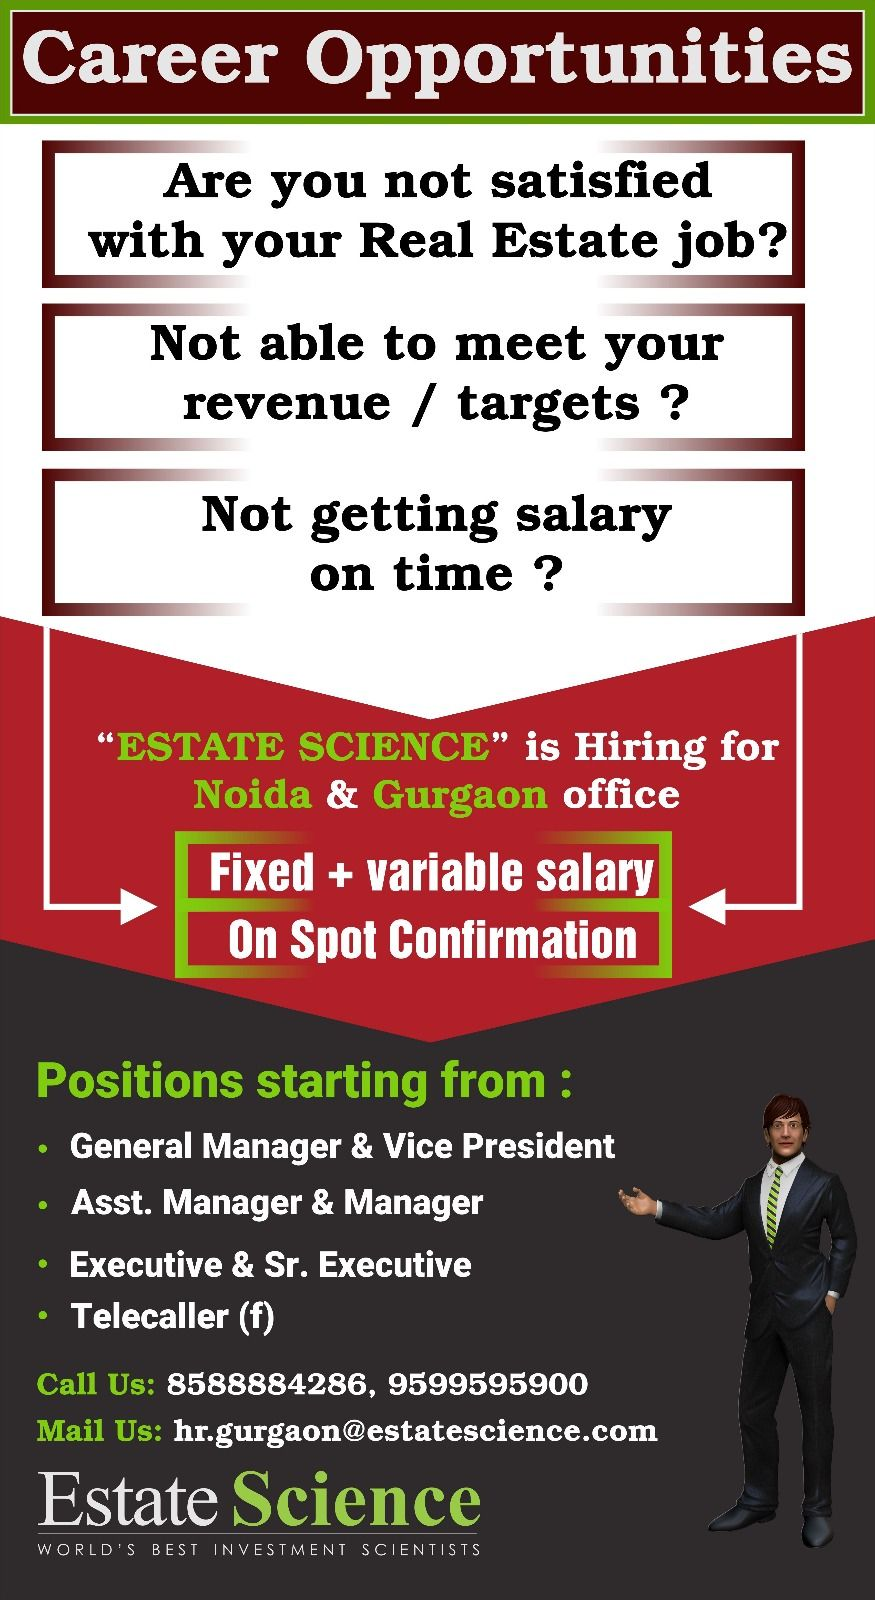 Estate science is hiring for #Gurgaon and #Noida Office, Get the ...